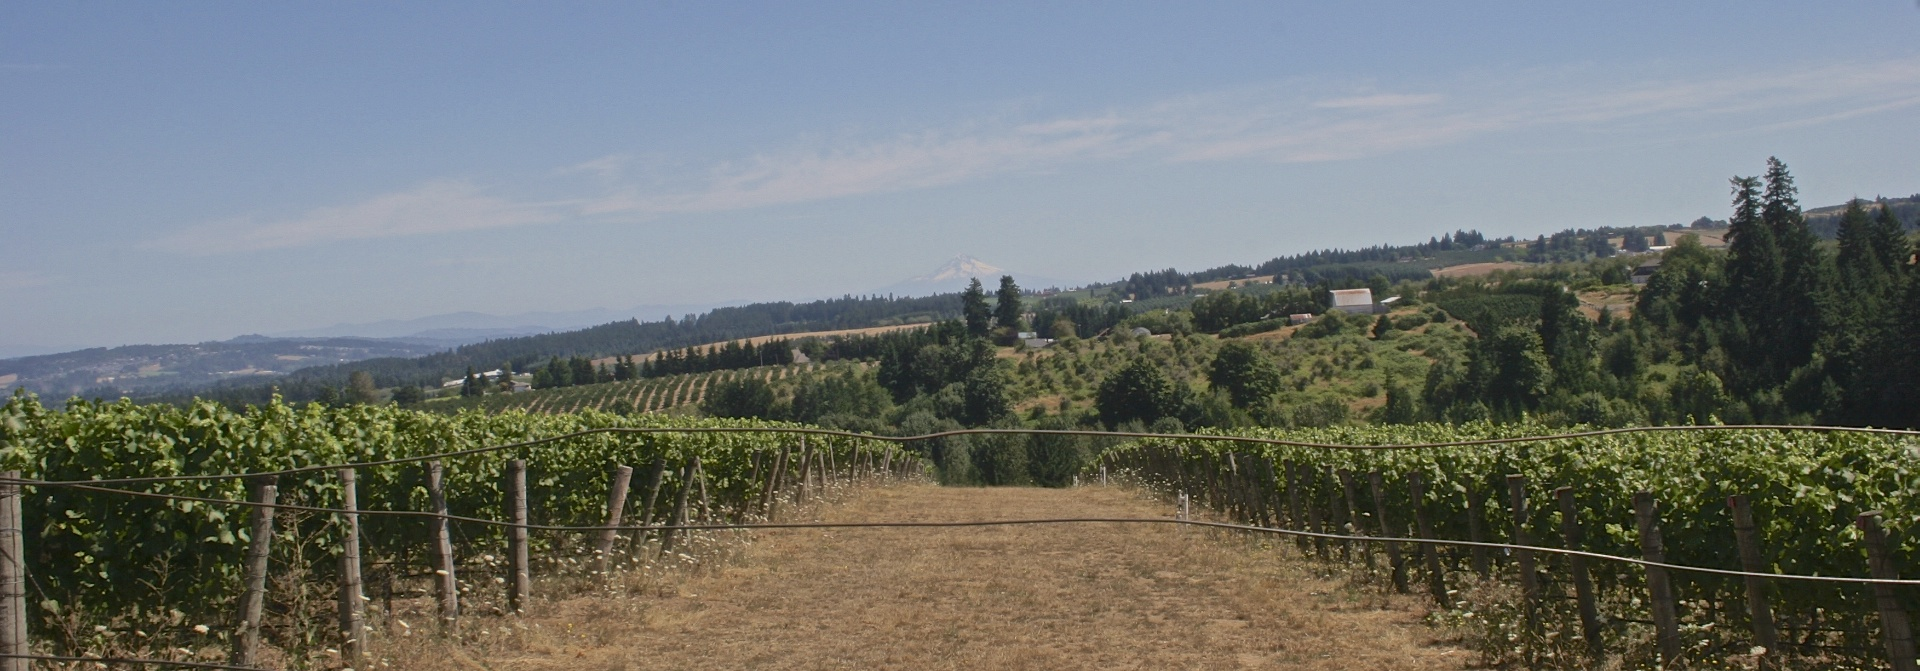 wine_country_william_kaven.jpg